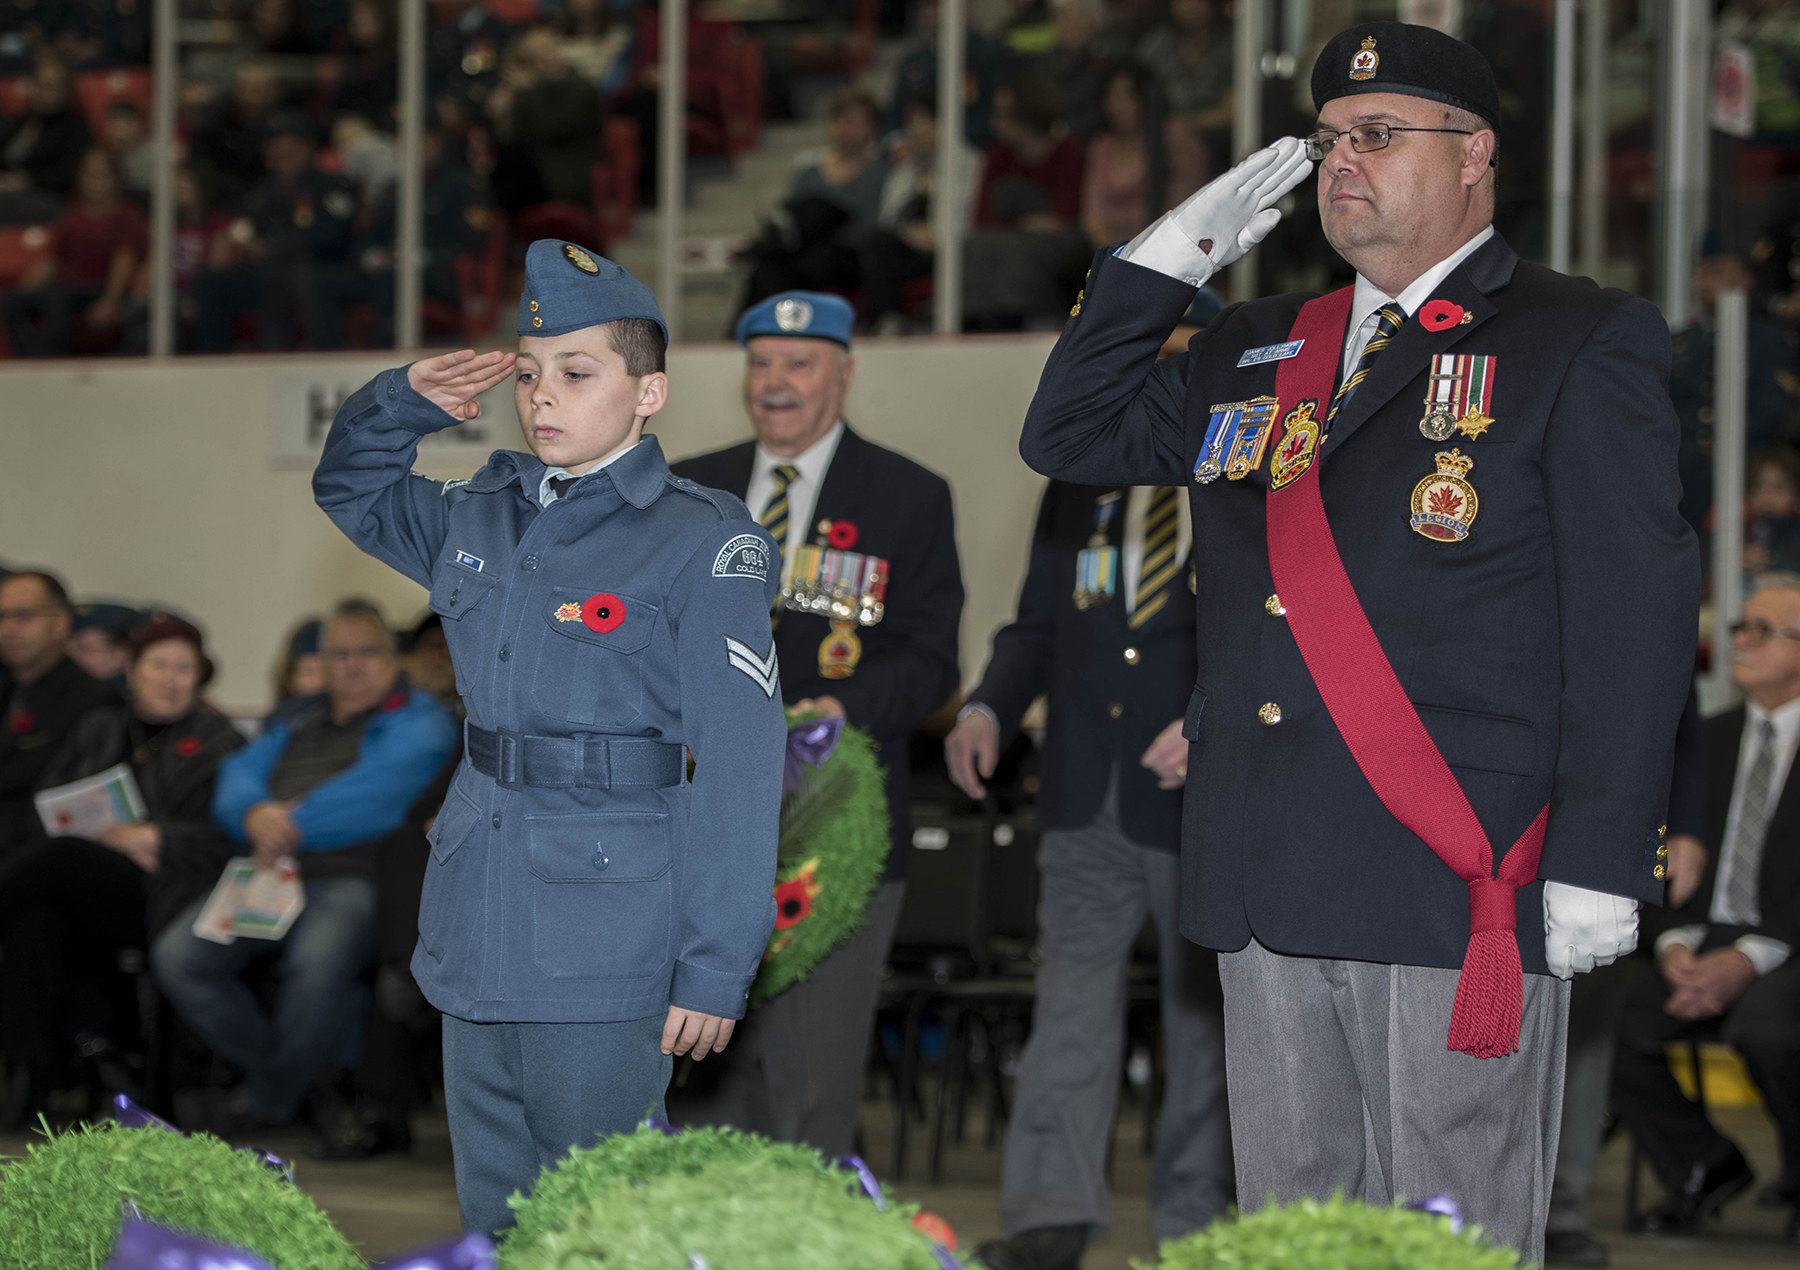 A member of Cold Lake Royal Canadian Air Cadet Squadron 664 salutes after laying a wreath during the 4 Wing Remembrance Day ceremony held at the Energy Centre in Cold Lake, Alberta on November 11, 2015. PHOTO: Corporal Manuela Berger